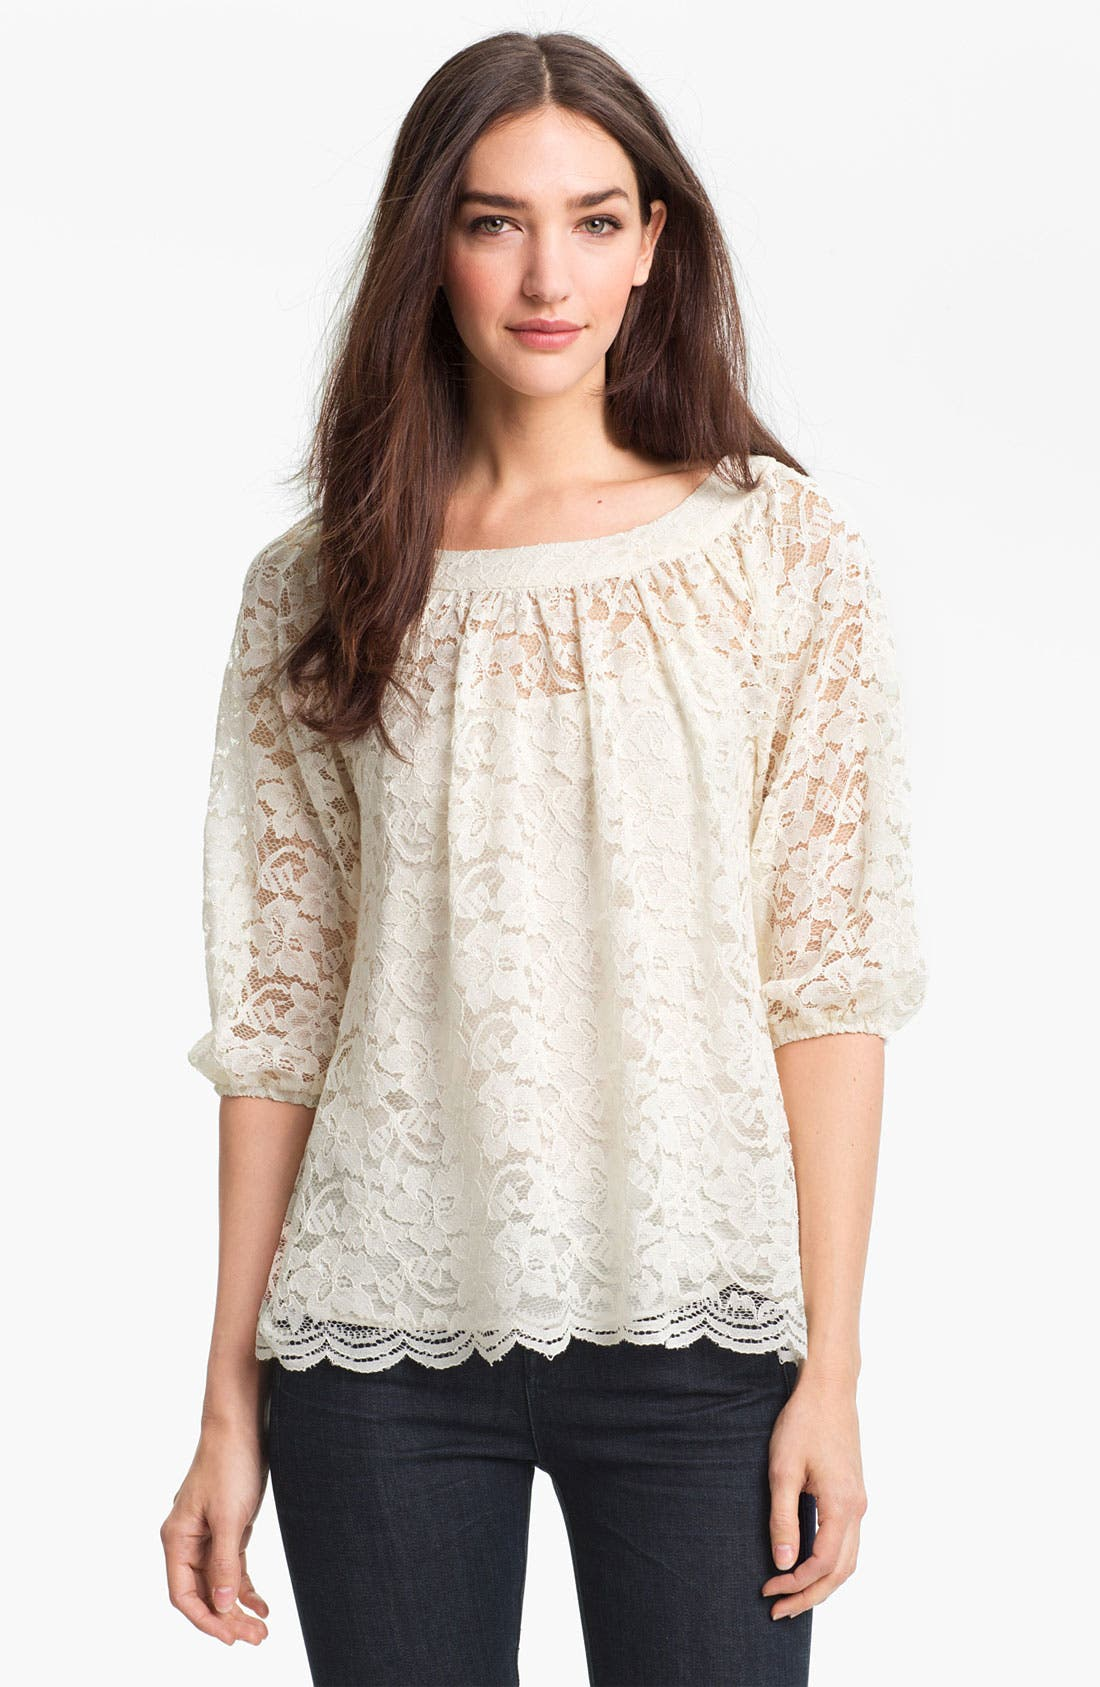 Alternate Image 1 Selected - Diane von Furstenberg 'Elizabetta' Lace Top